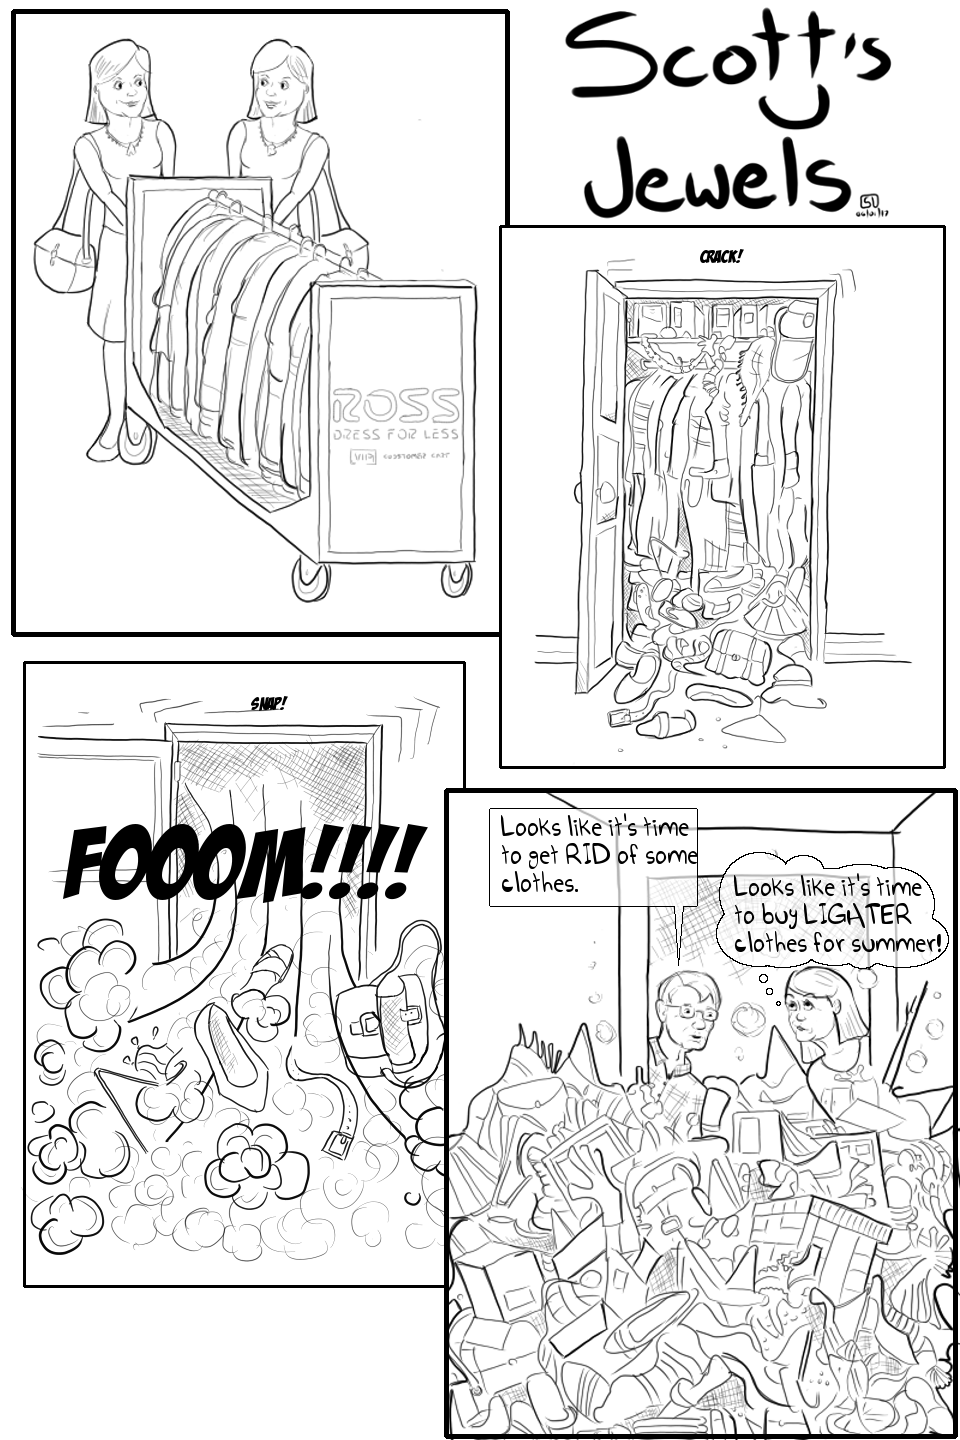 fashionista closet wardobe style clothes mom family homeimprovement drawnandcoded comic